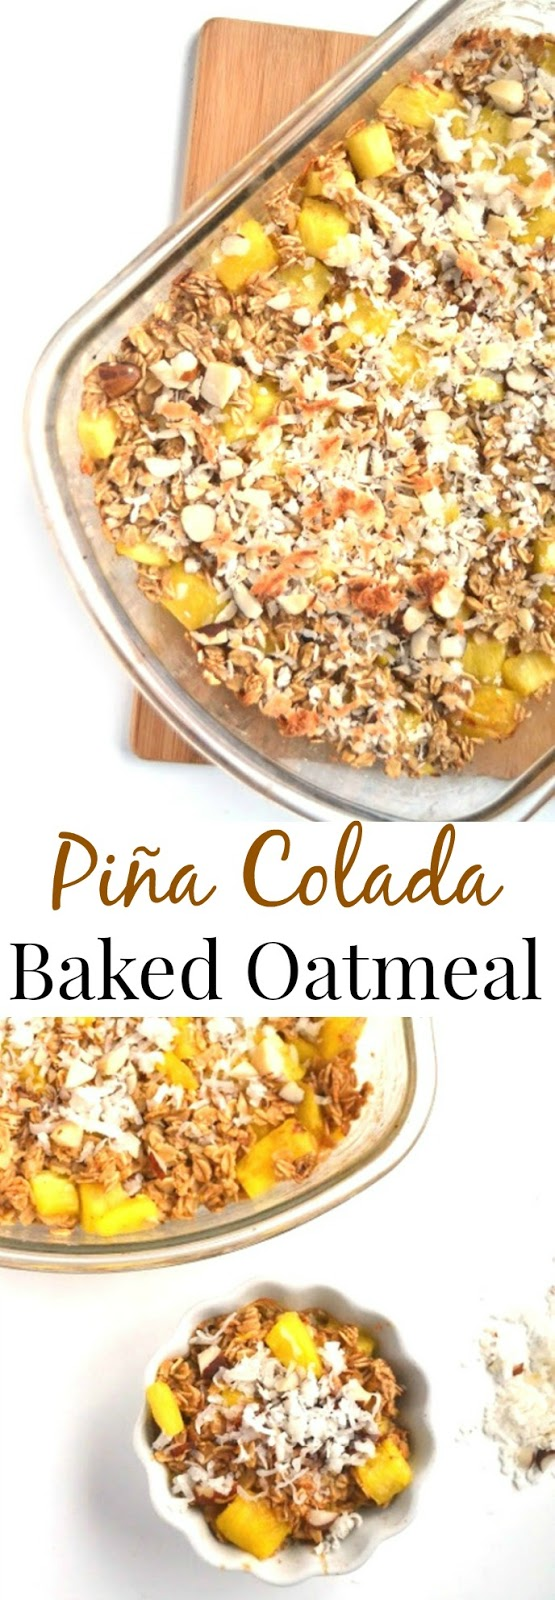 This Piña Colada Baked Oatmeal will remind you of a tropical vacation and is healthy and filling! Prep ahead of time and bake in the morning. www.nutritionistreviews.com